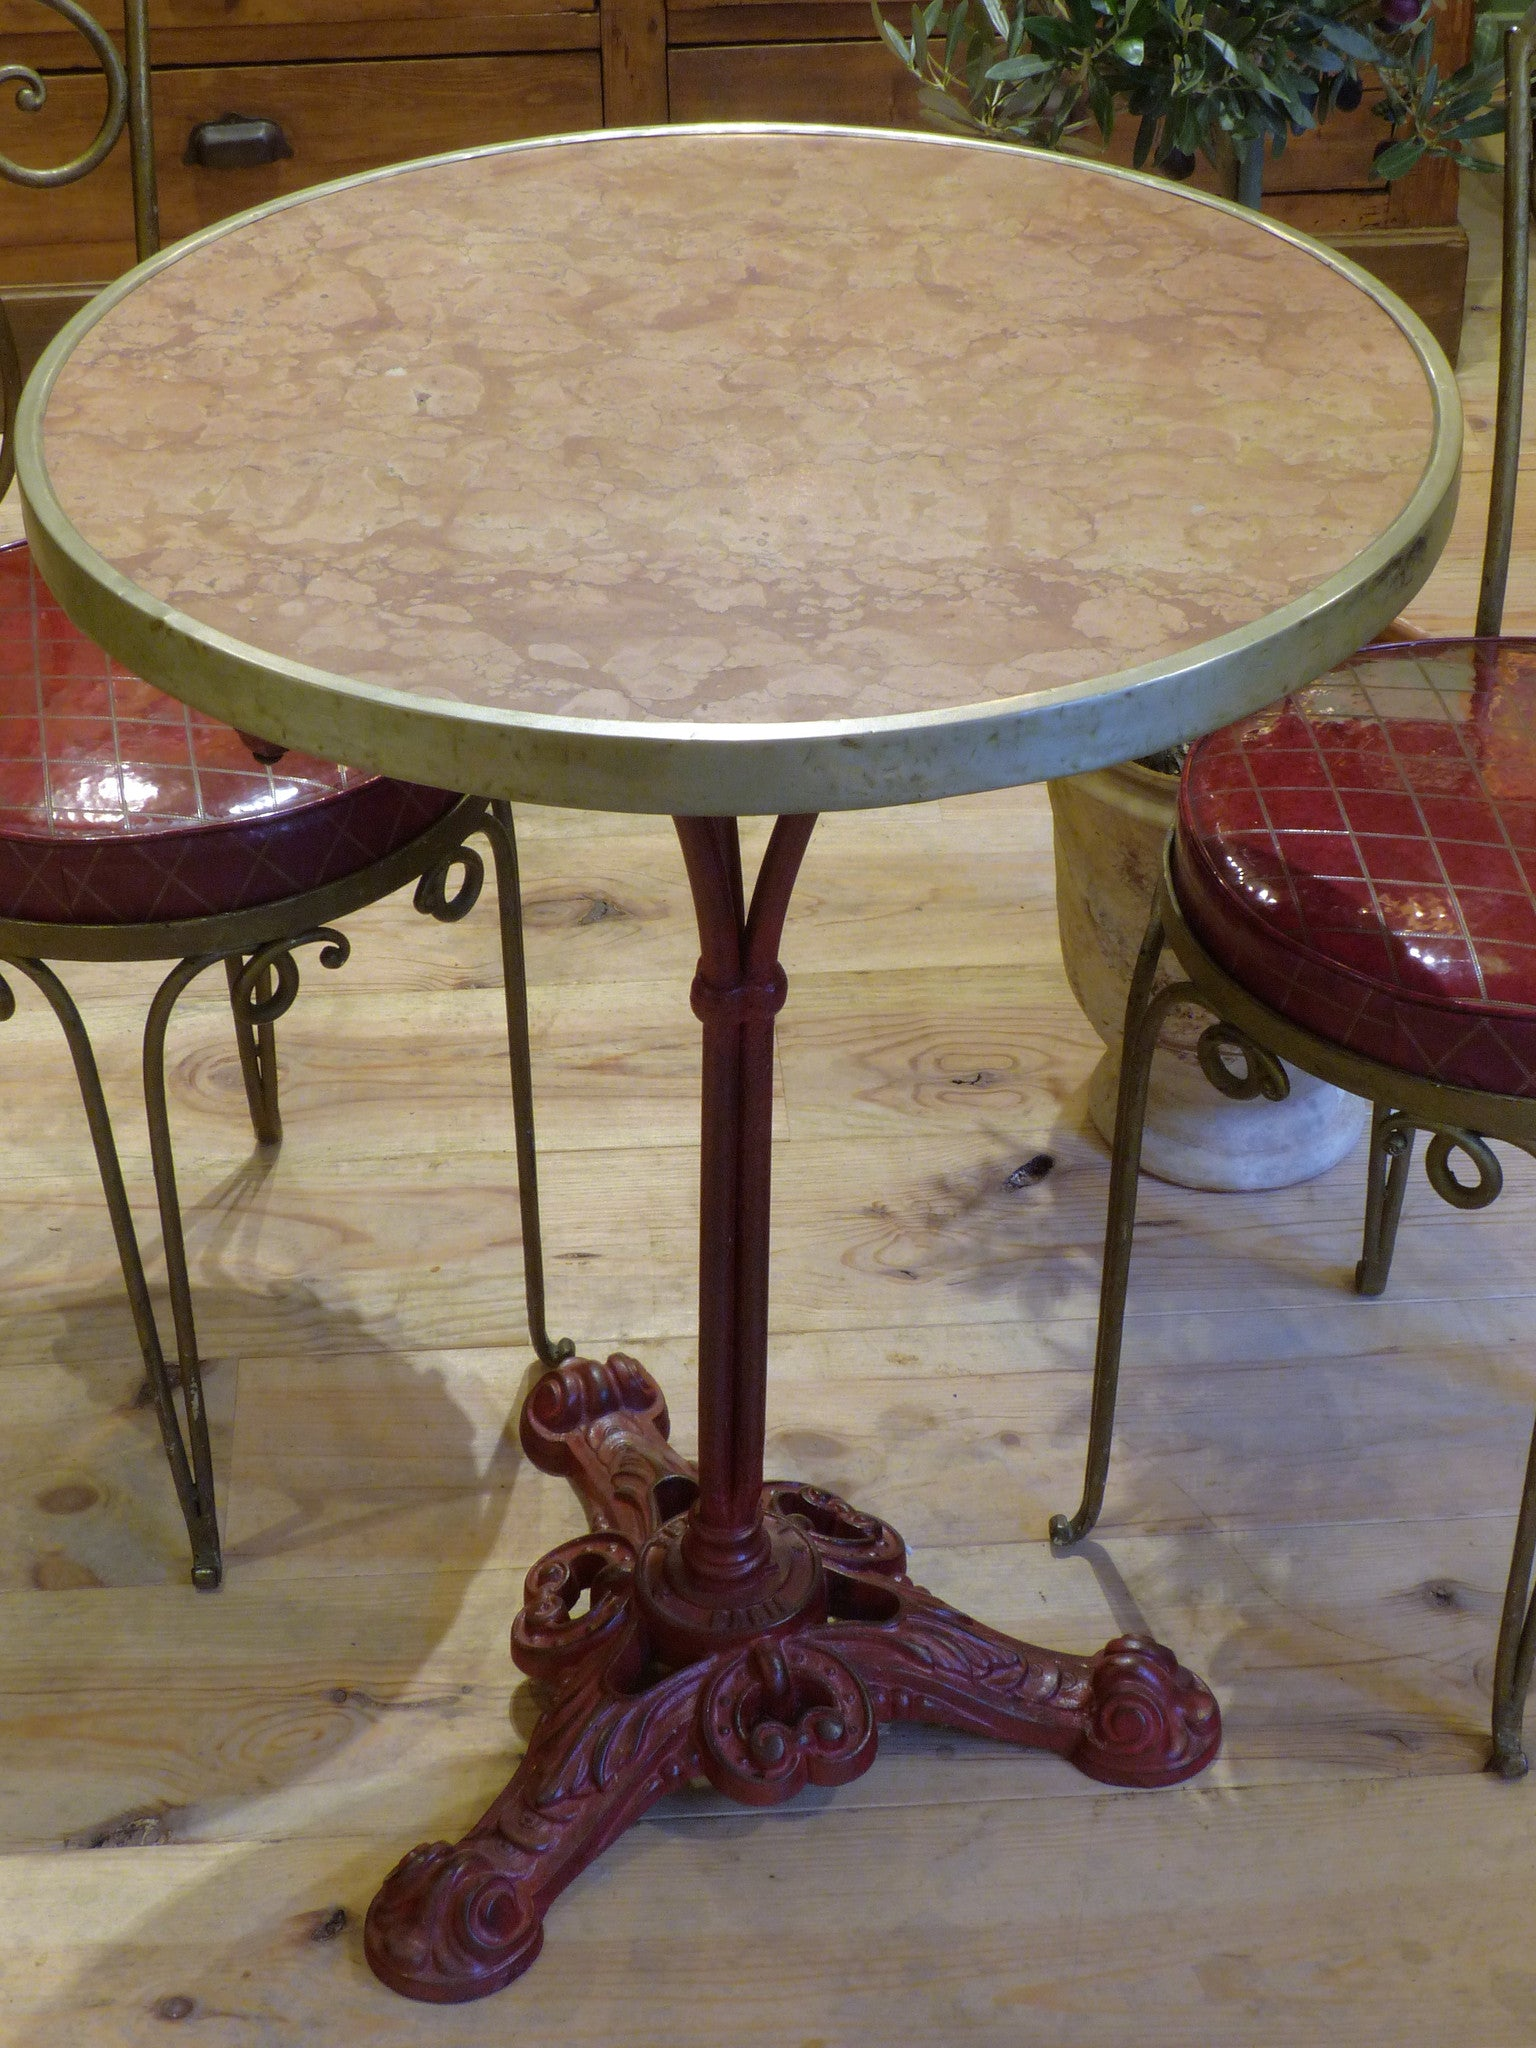 Round marble top bistro table with red stand - Paris